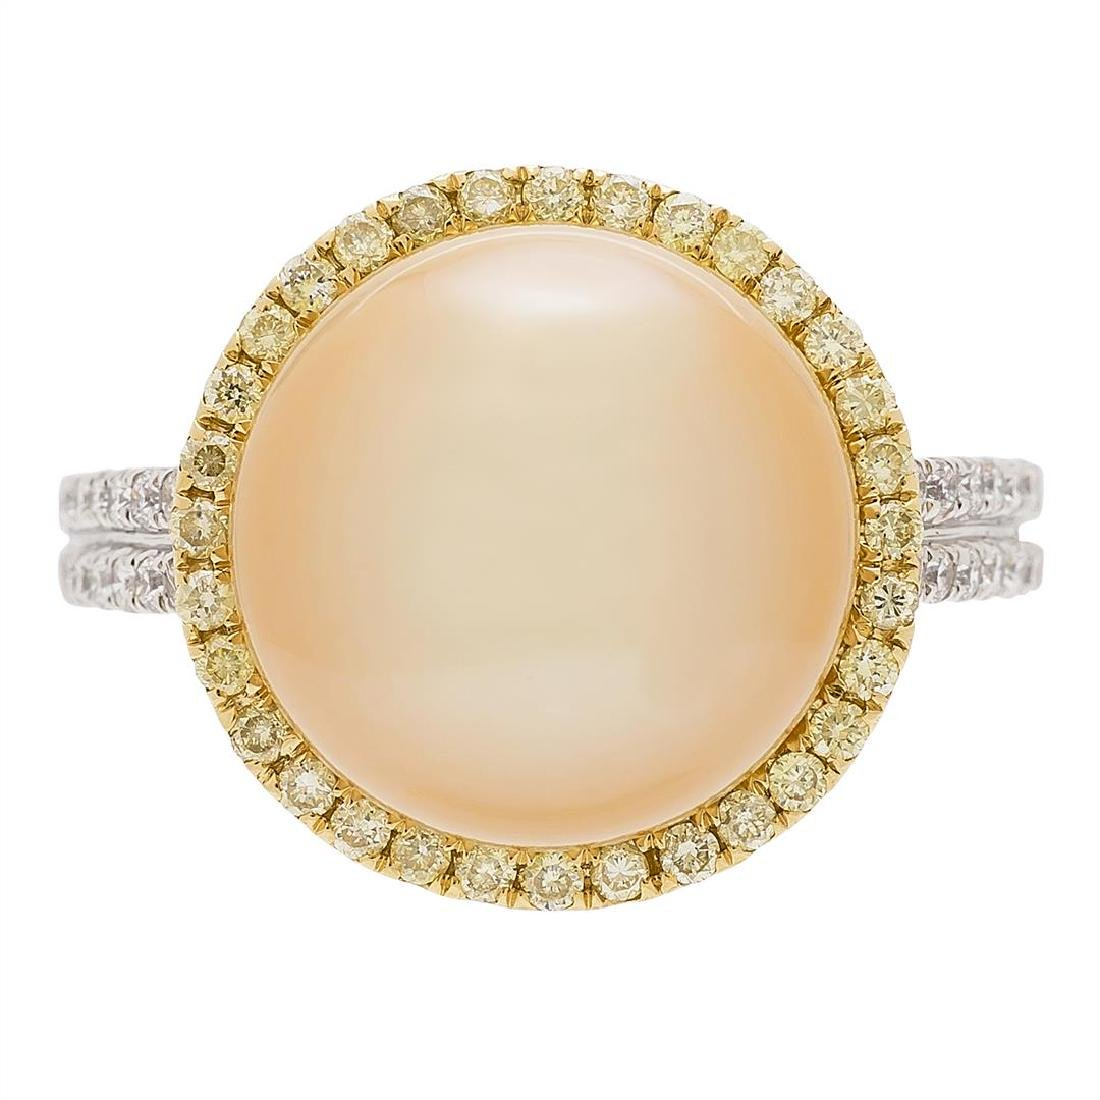 0.42 ctw Yellow and White Diamond and Pearl Ring - 18KT